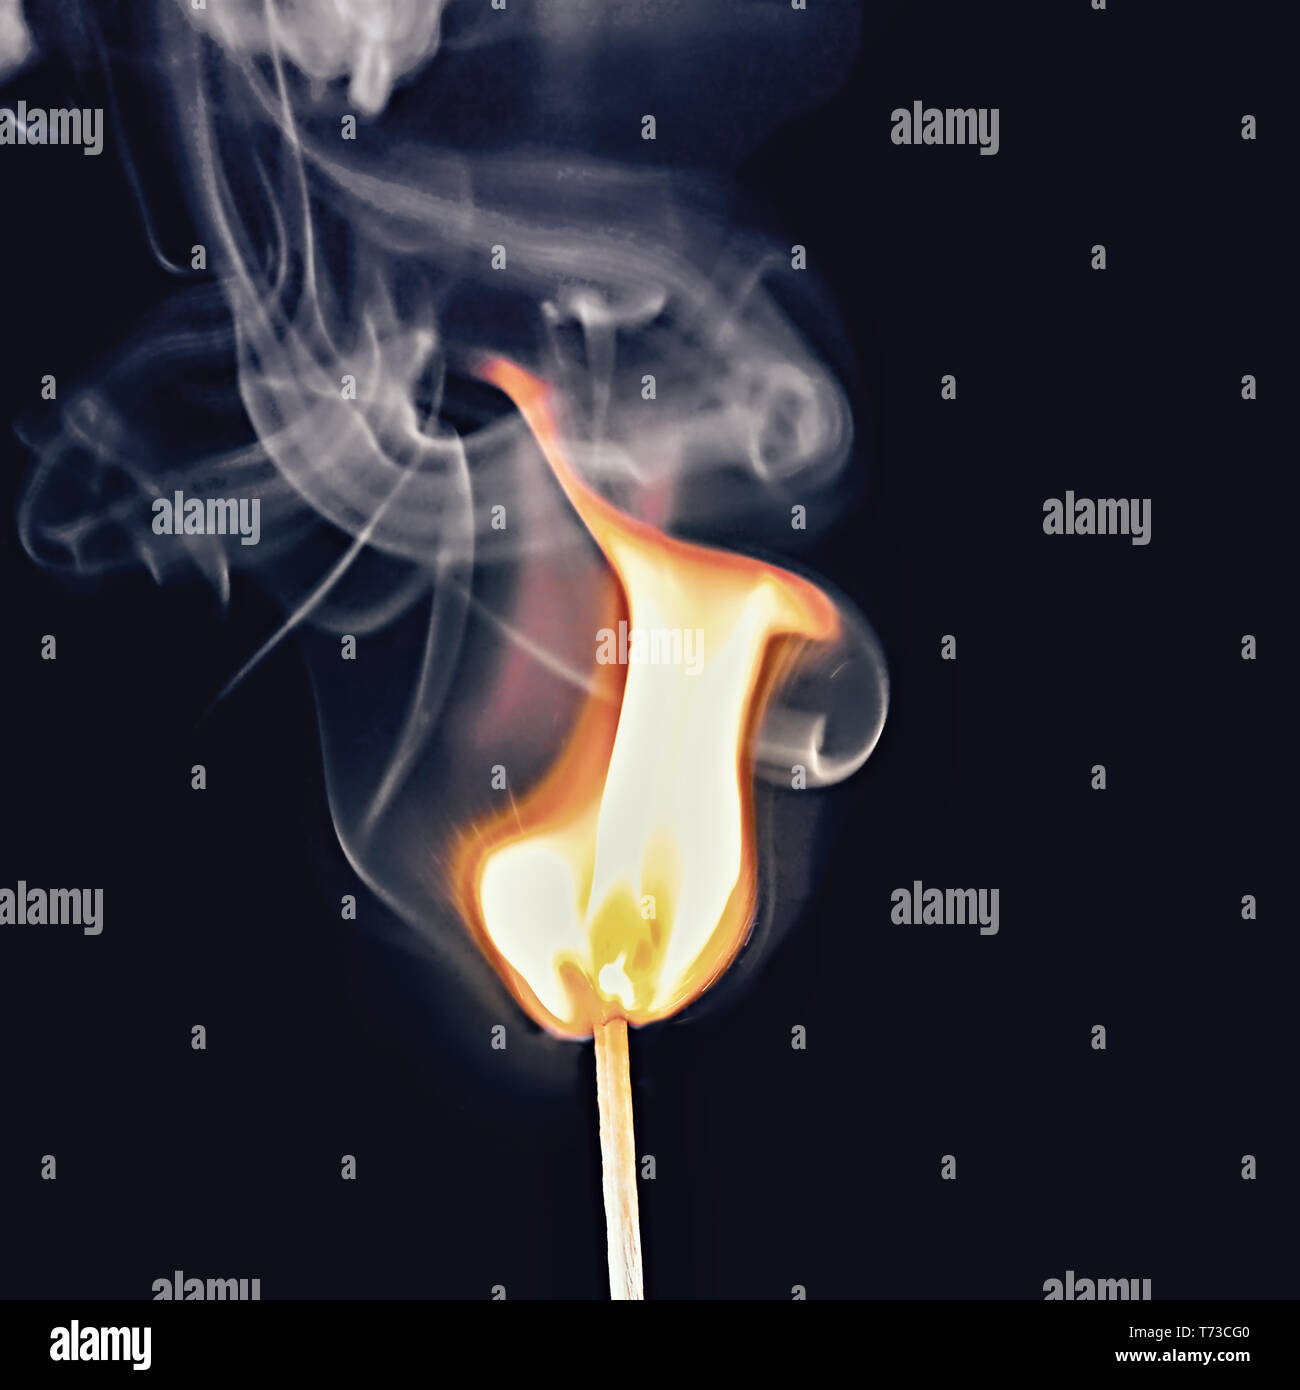 expressionistic smoke development and visible flame of a burning match, isolated on black background. The smoke forms swirls in transparent shades of  - Stock Image